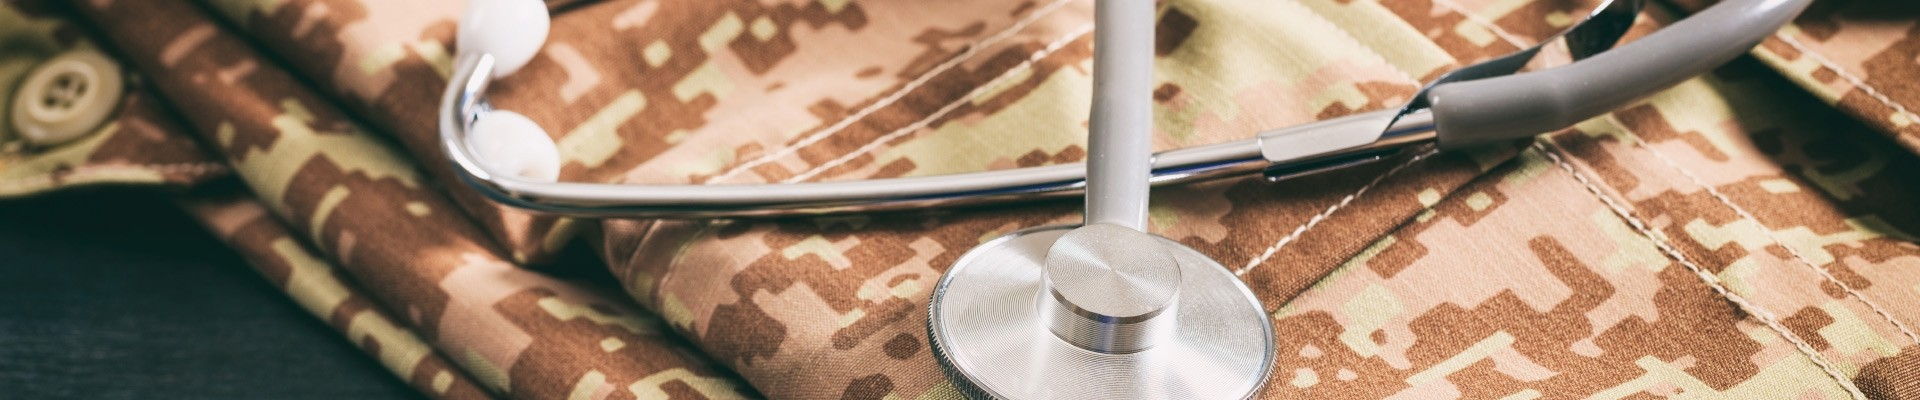 Supporting Veteran Health with Data